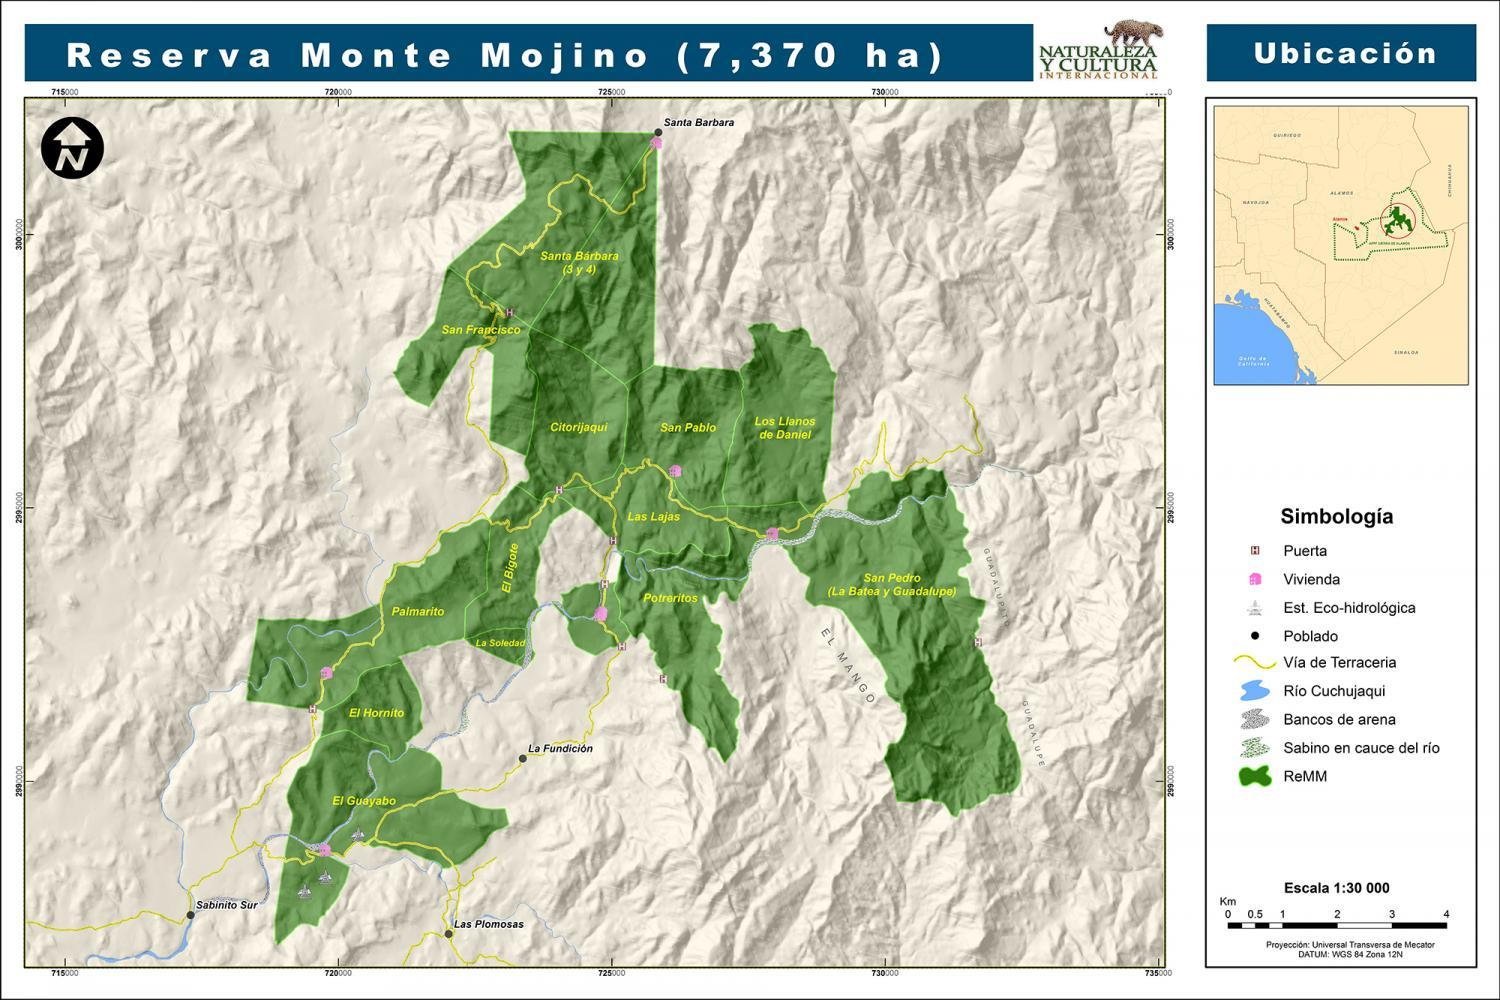 Map of Reserva Monte Mojino